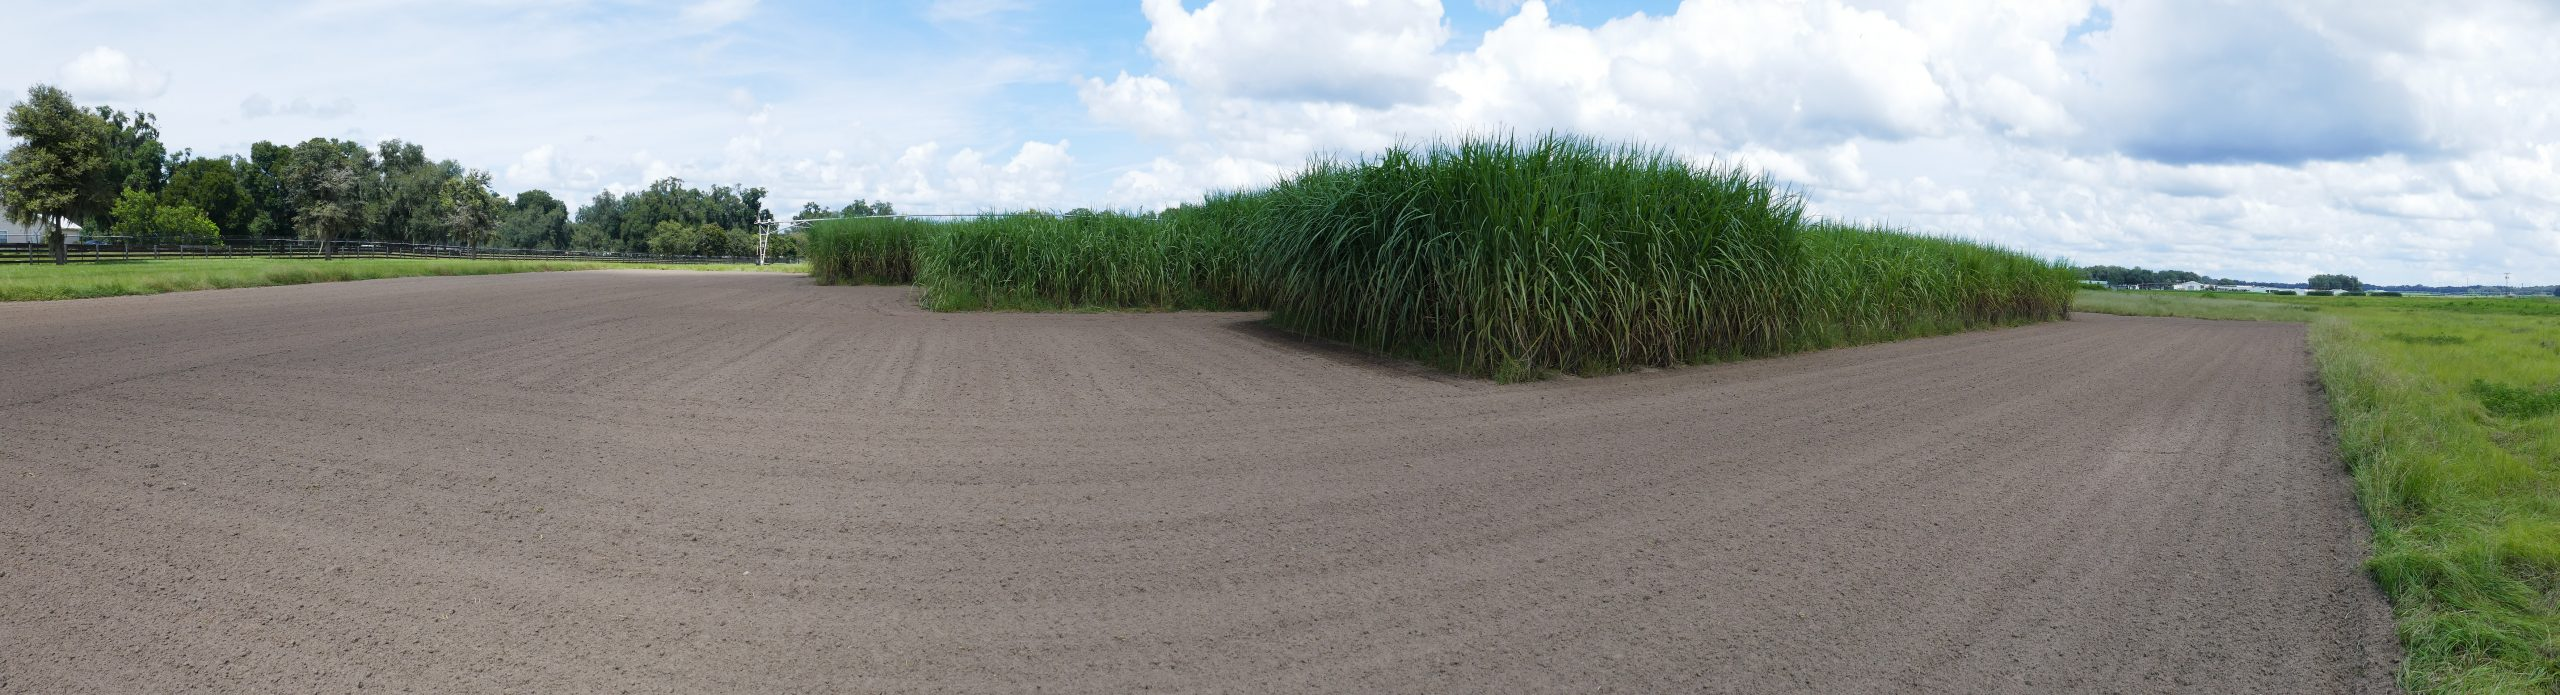 CABBI oilcane plots at the University of Florida - IFAS Plant Science and Education Unit near Citra, FL.